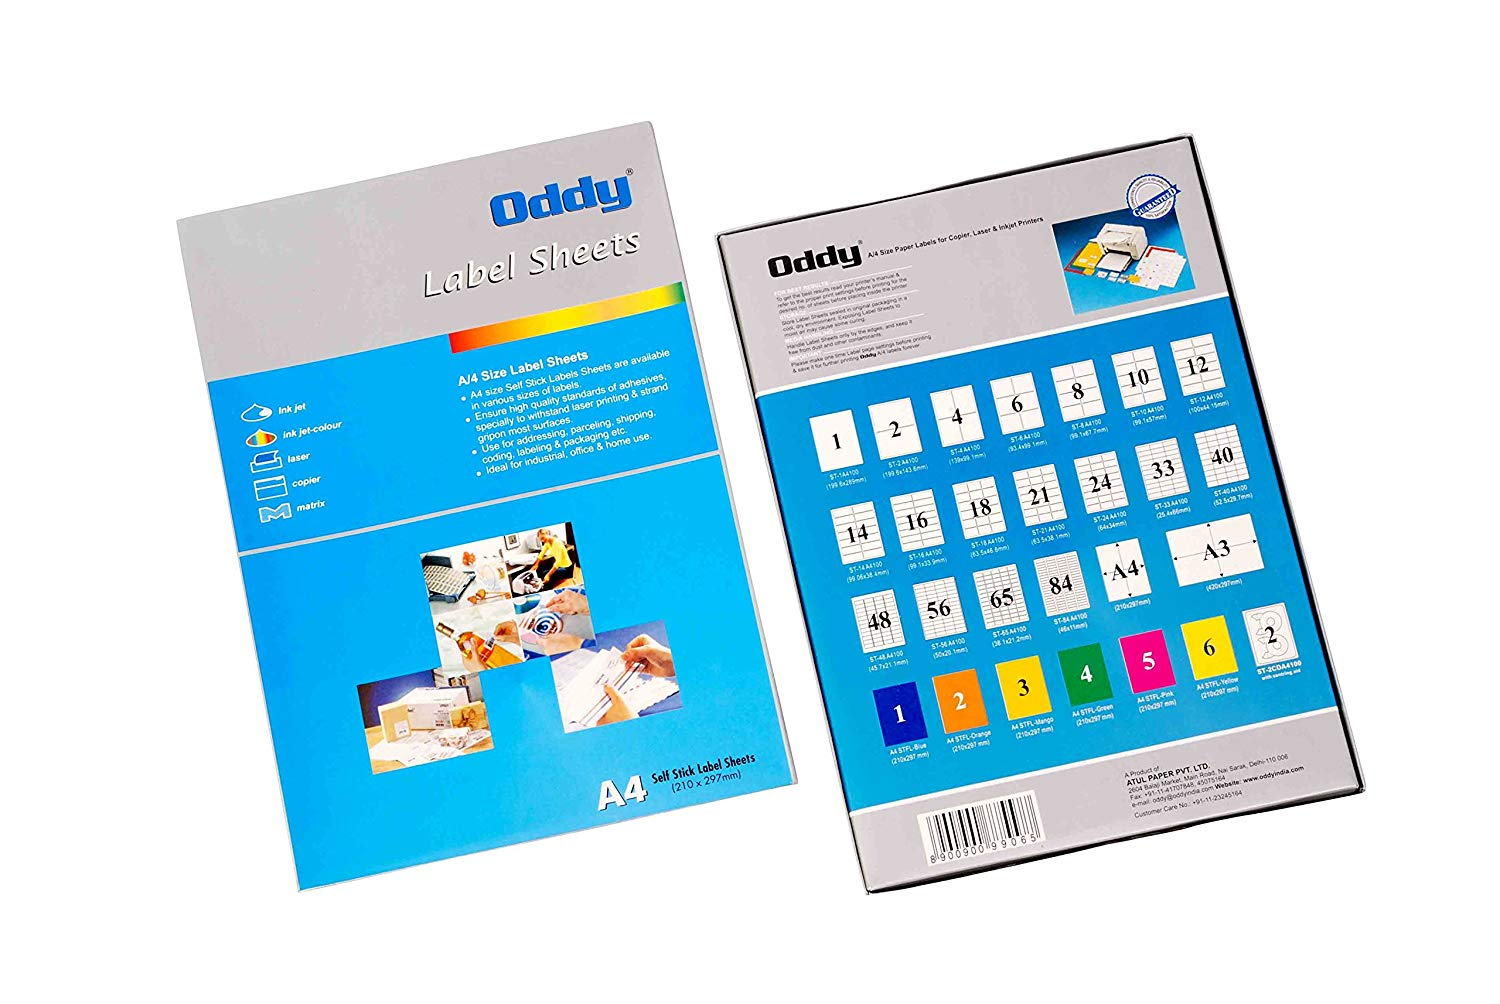 Oddy Label Sheets St 56 A4100 Pack Of 100 Sheets 56 Label Sheet Penpaperoffice